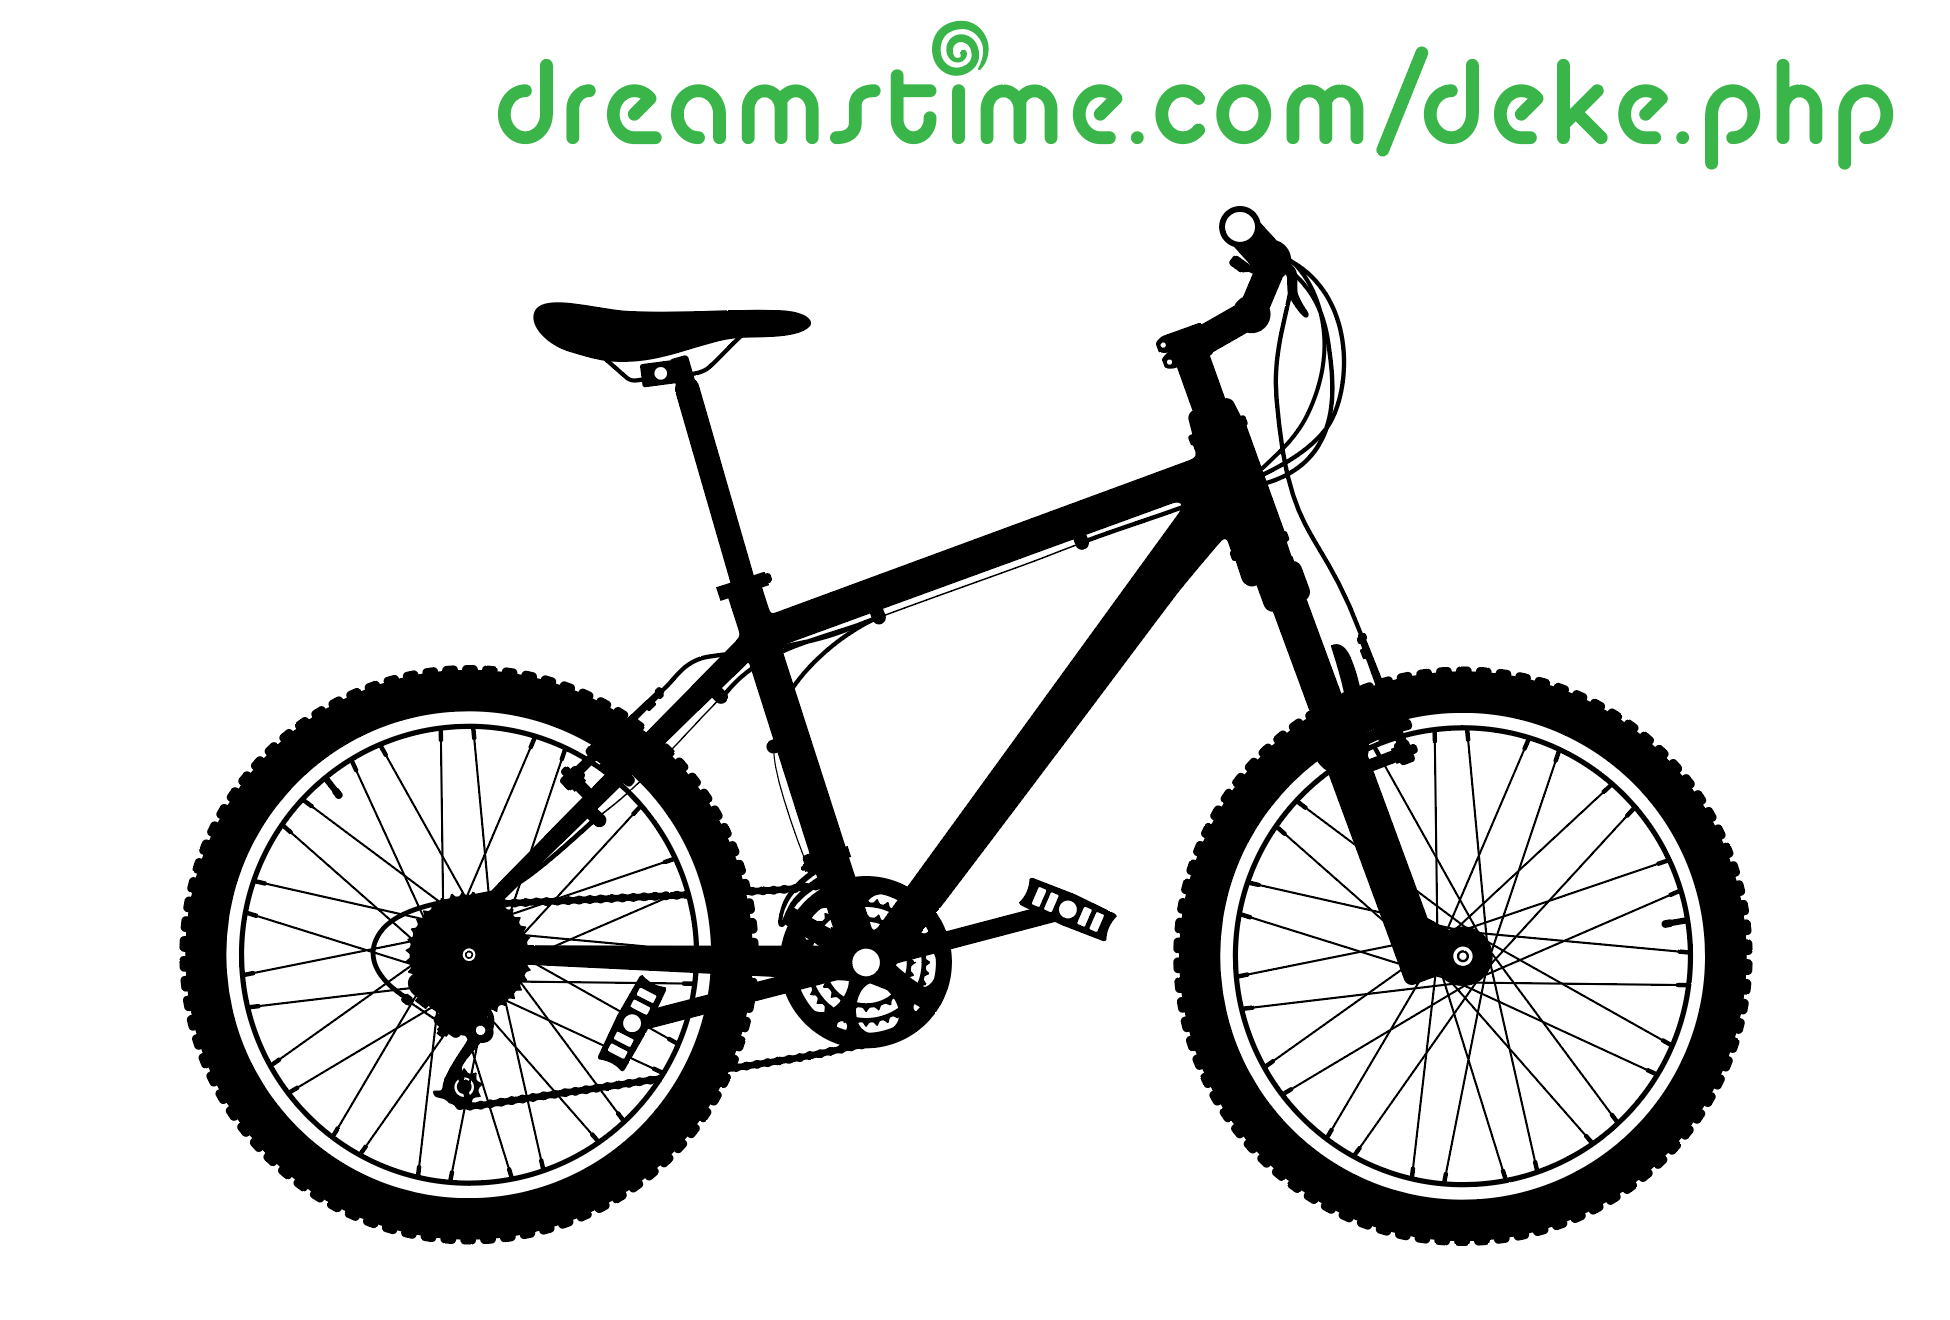 A vector bicycle illustration from Dreamstime.com